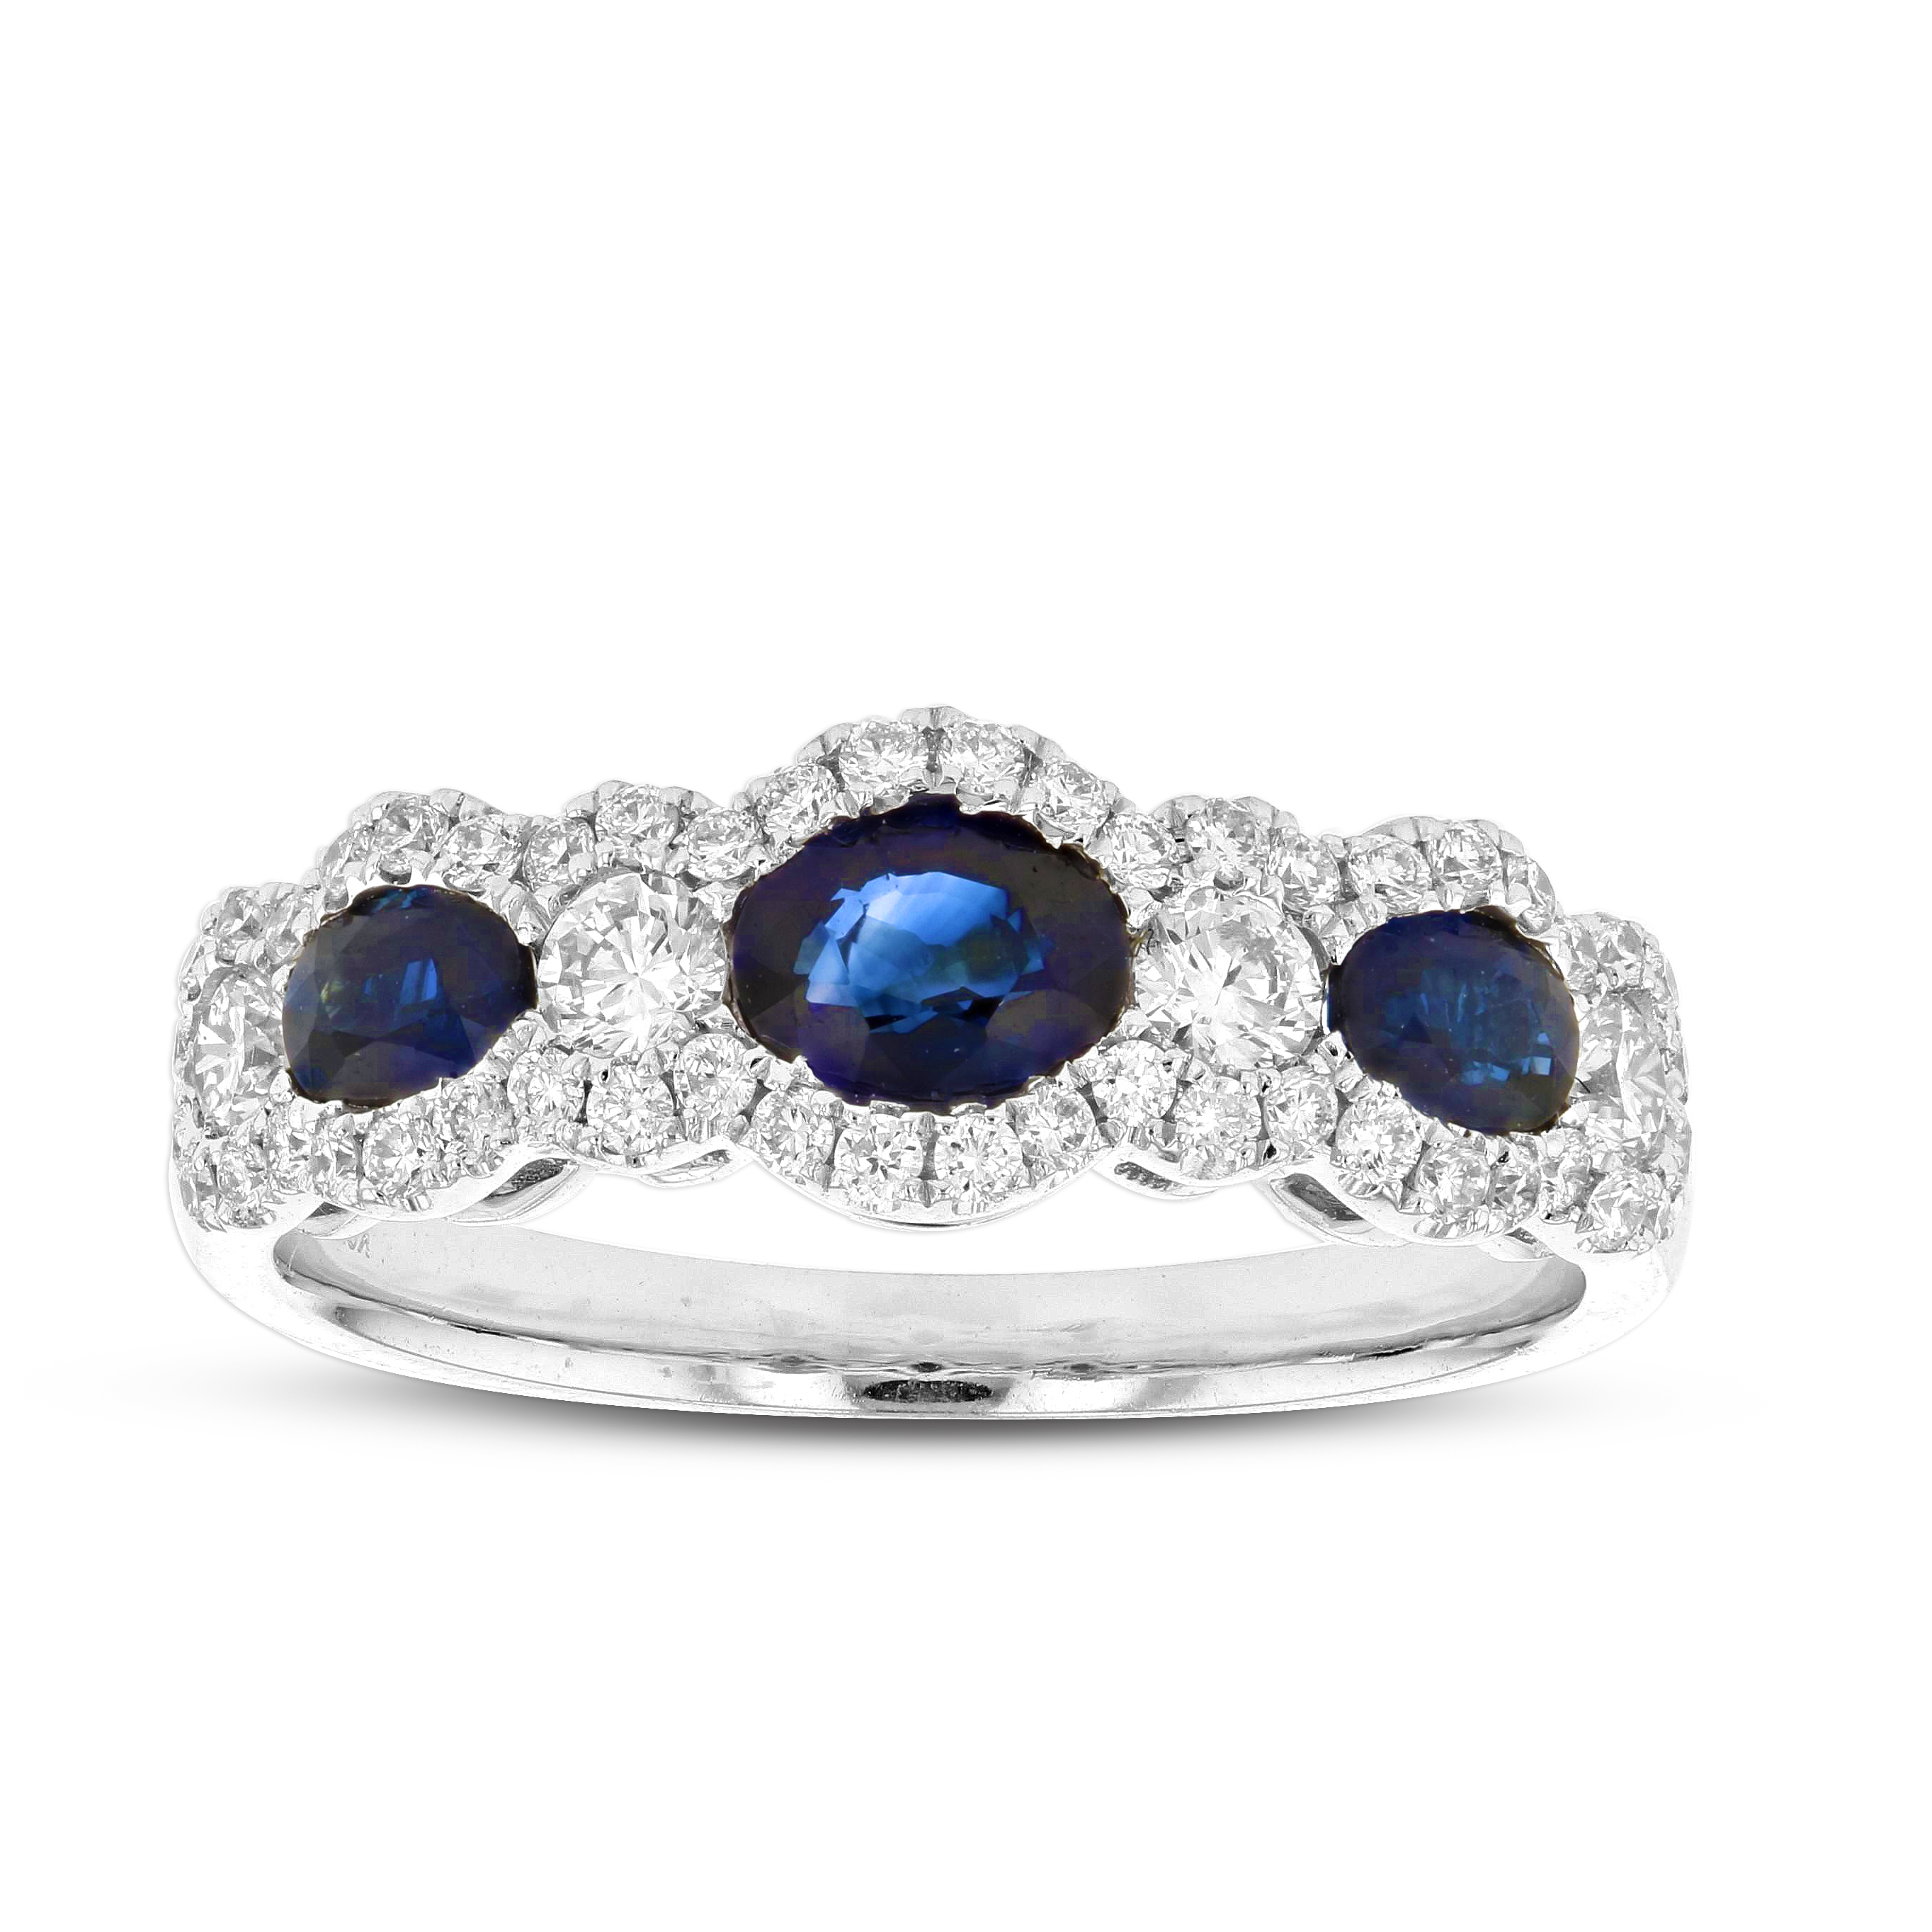 View 1.49ctw Diamond and Sapphire Band in 18k White Gold